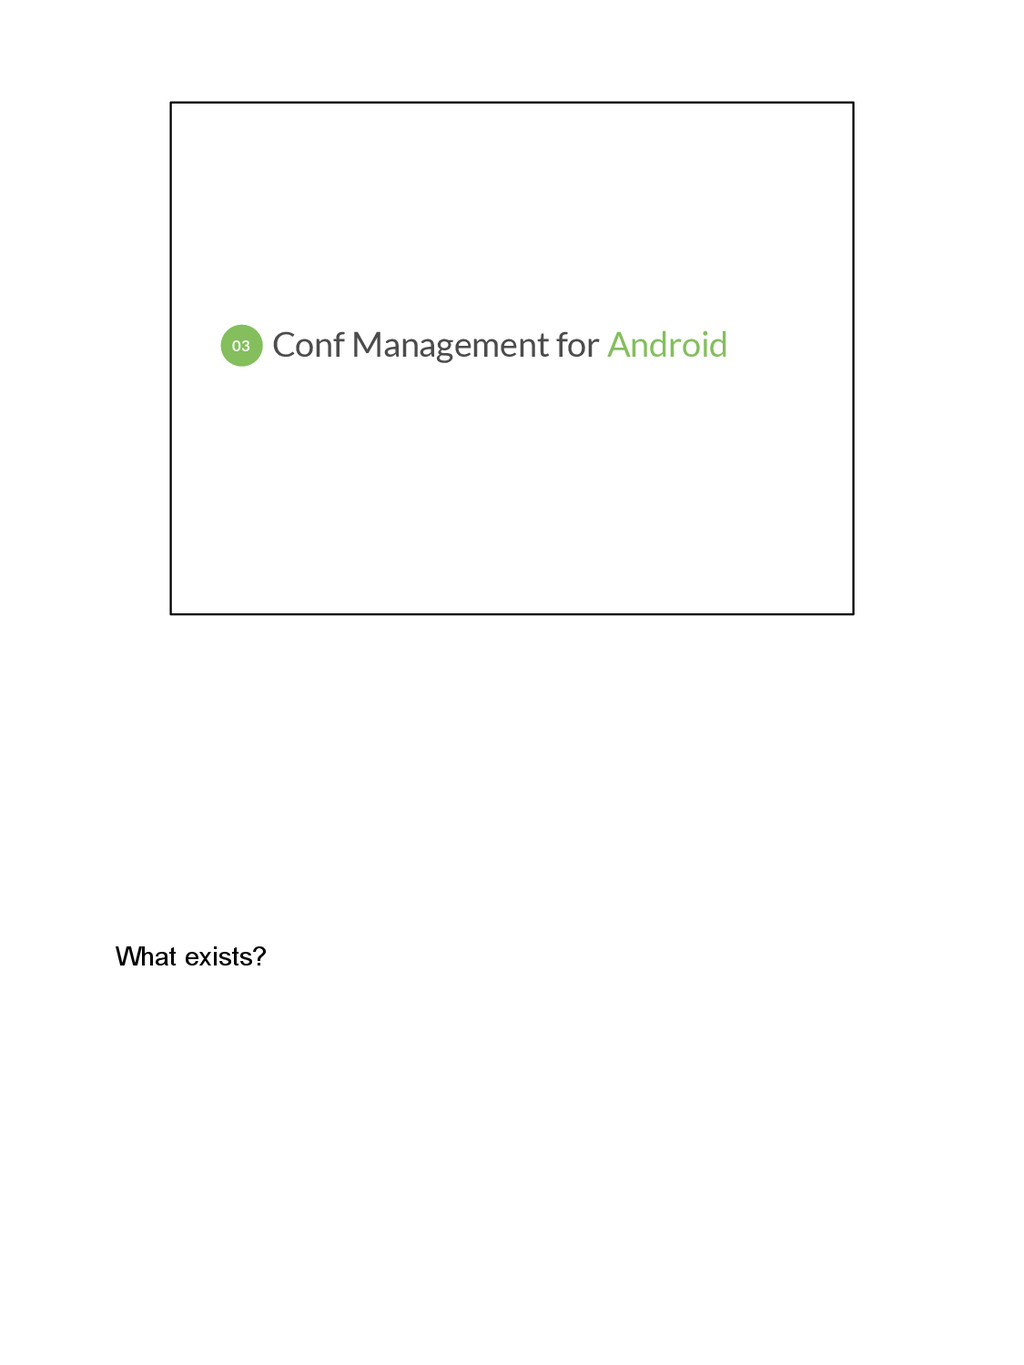 What exists? Conf Management for Android 03